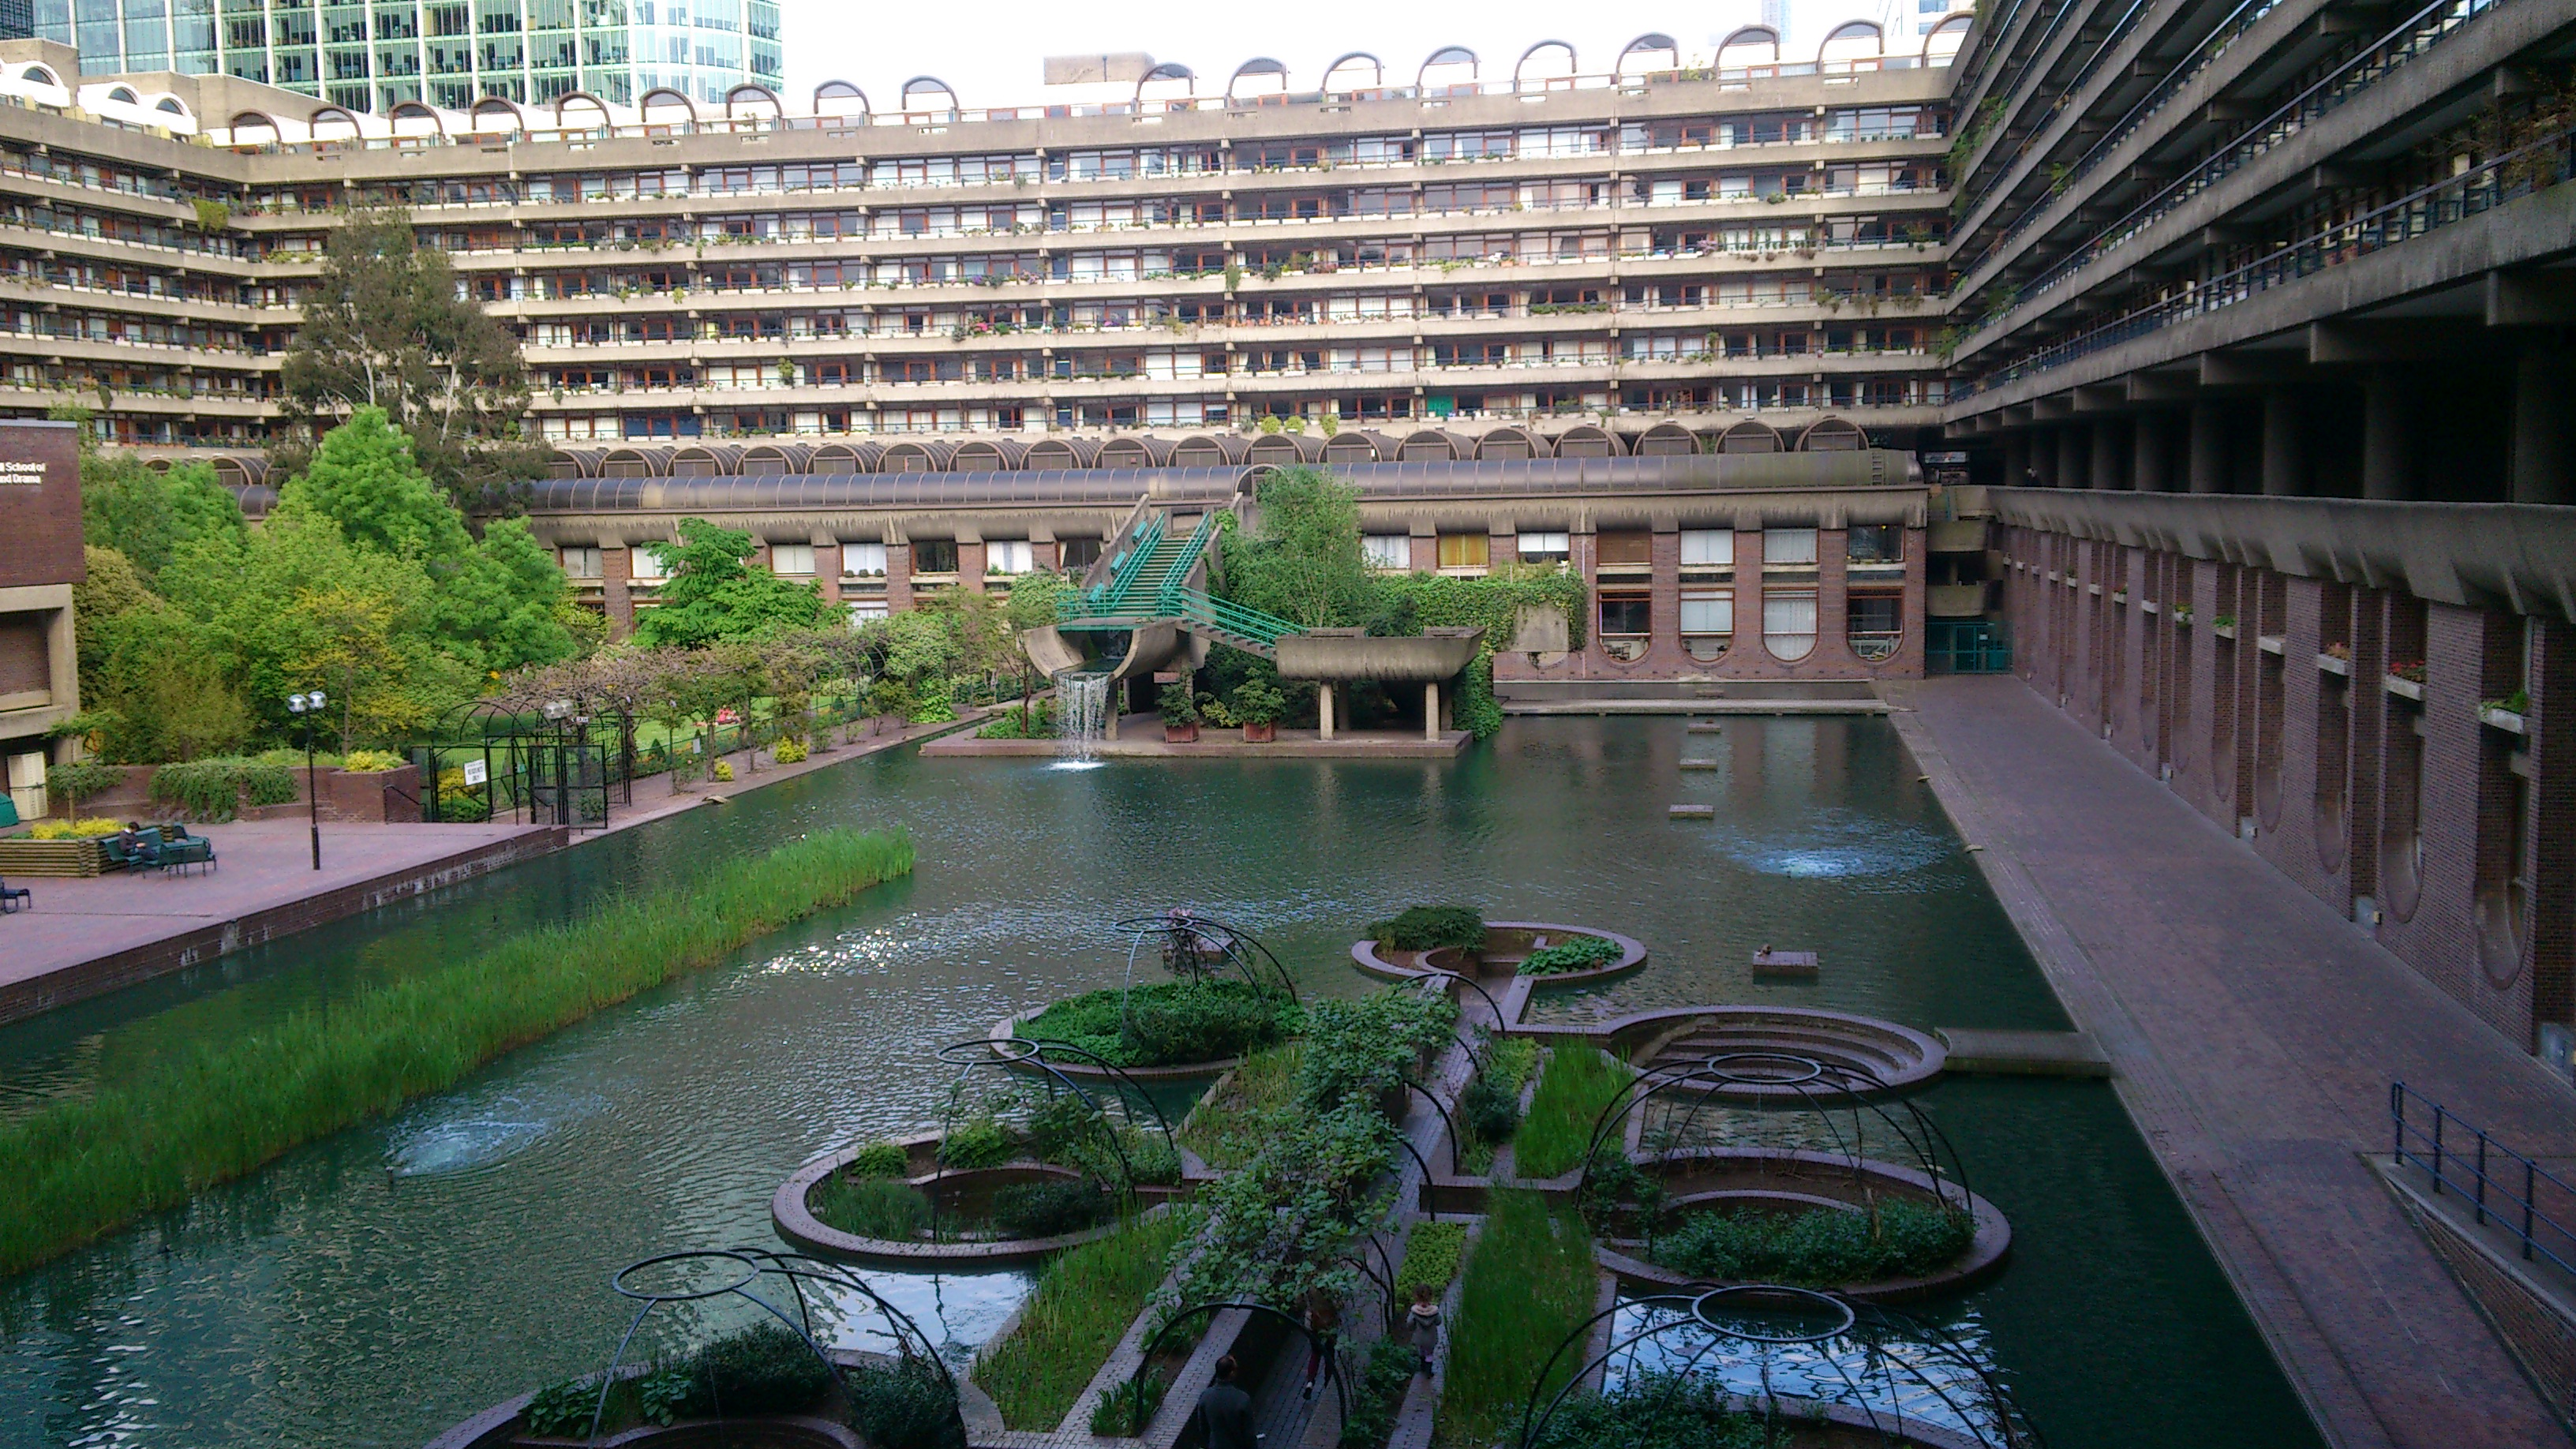 File:Barbican Centre London ABowery.jpg - Wikimedia Commons